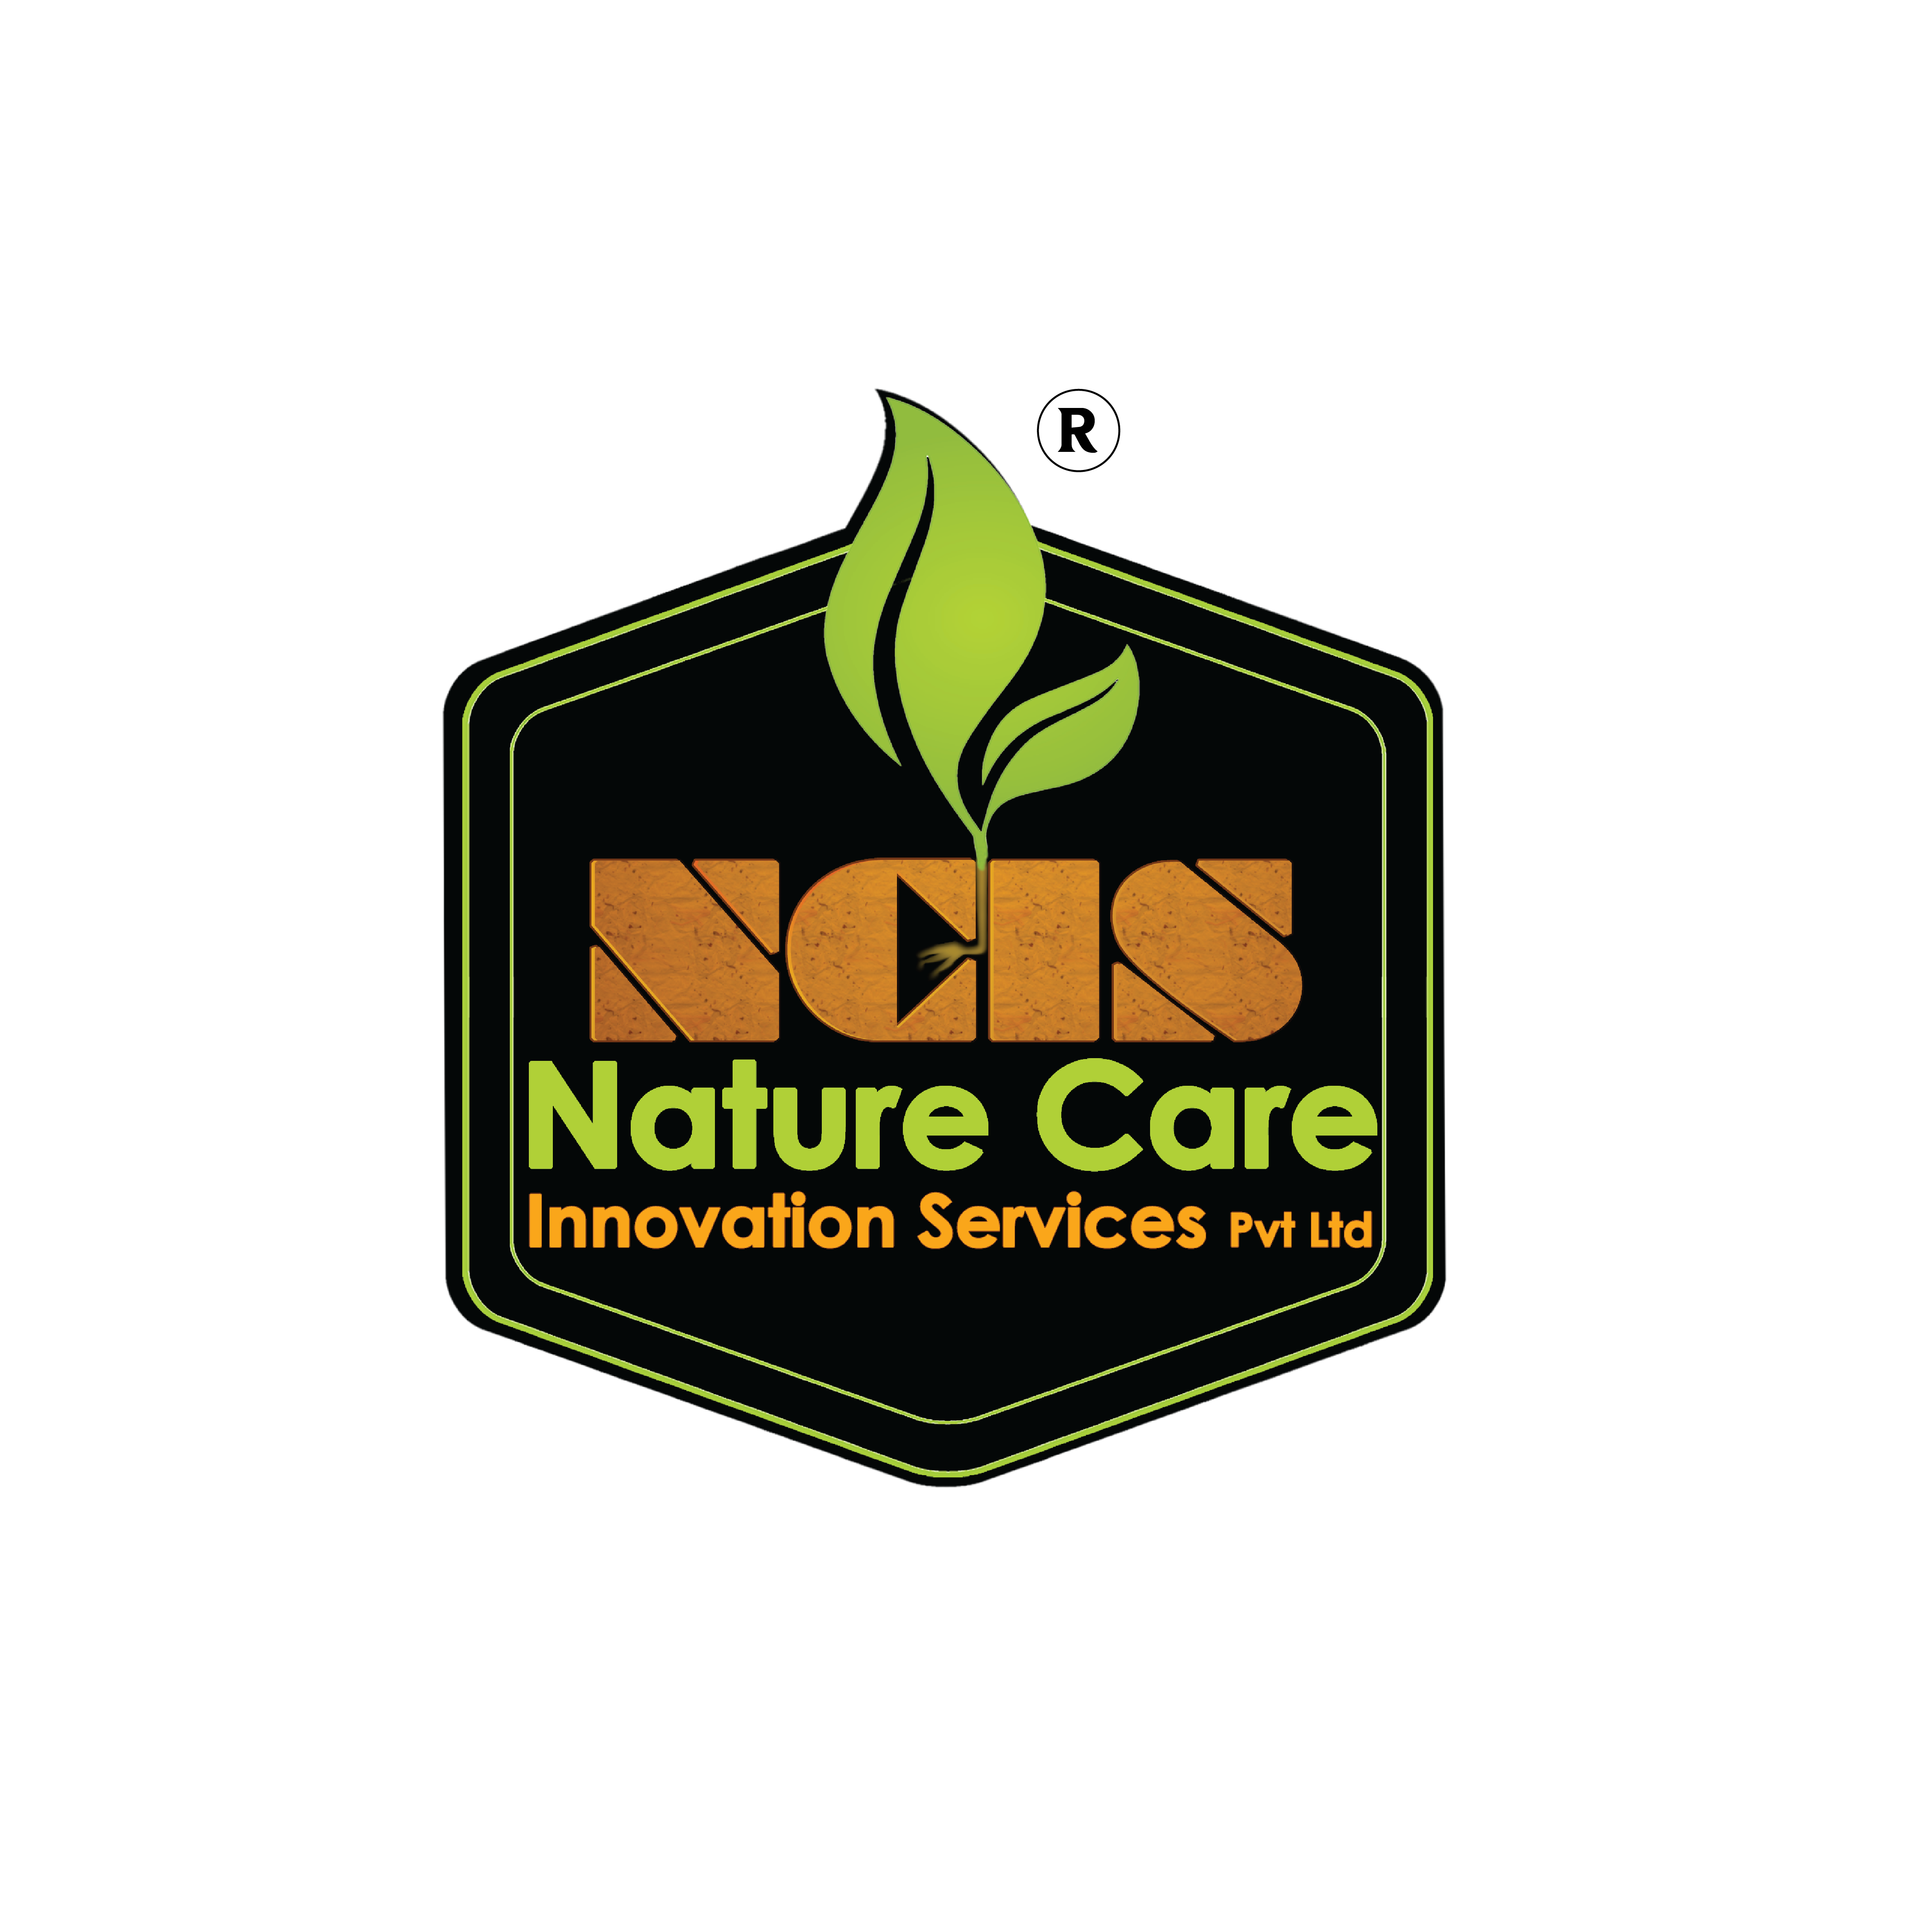 Nature Care Innovation Services